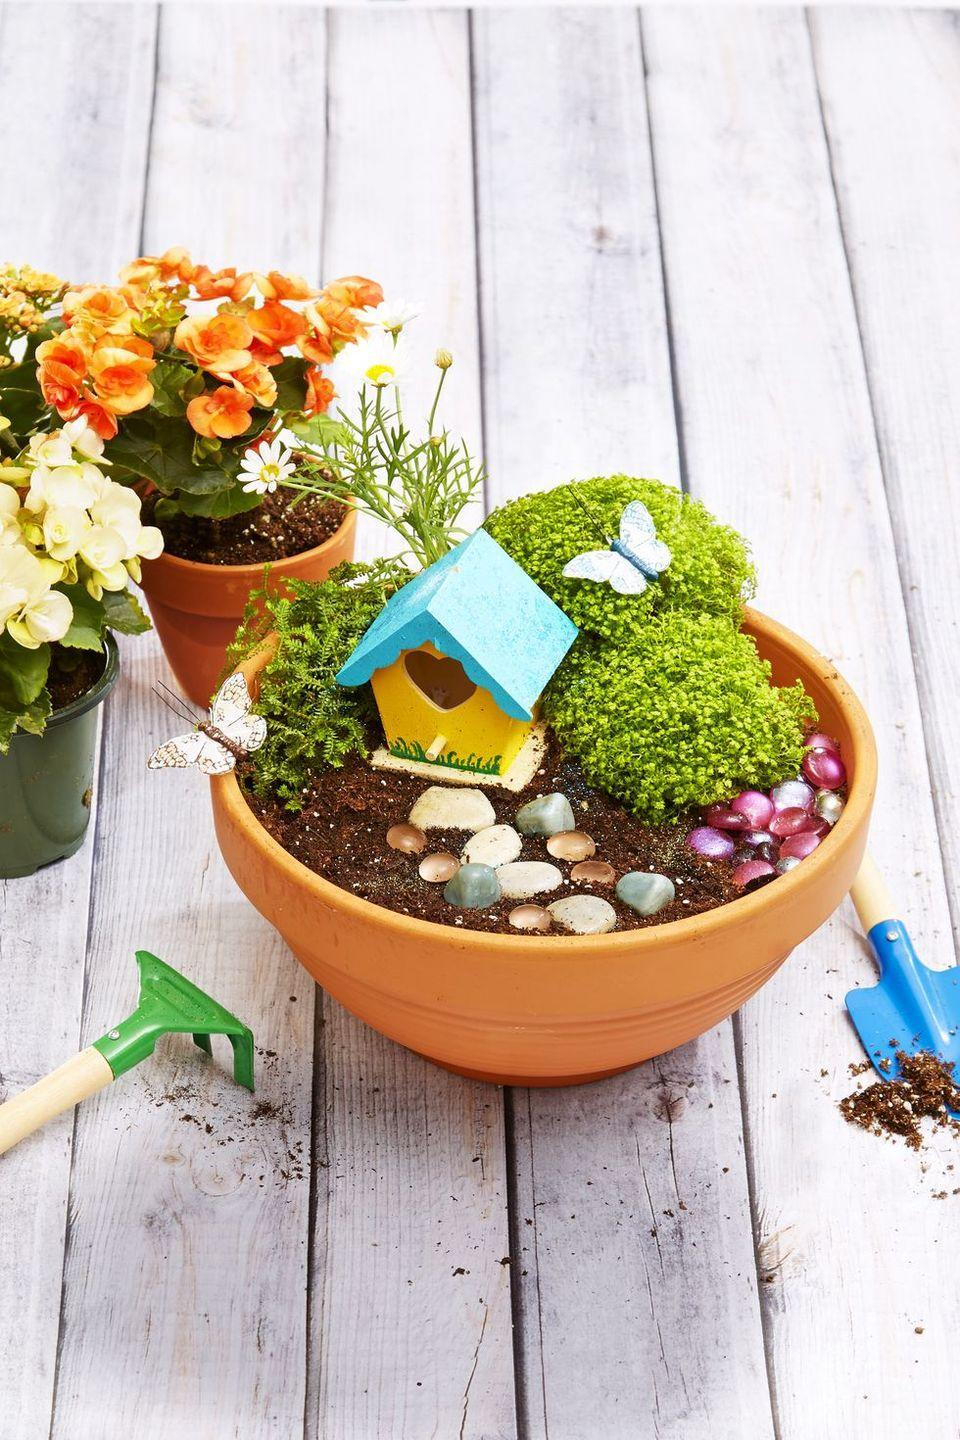 """<p>Even if you don't have room for a full-size garden, this little beauty gives you a similar experience. Once you fill a ceramic planter with soil, dress it up with rocks, low-growing shrubs, flowers, and a mini birdhouse fit for a fairy. </p><p><em><a href=""""https://www.goodhousekeeping.com/home/craft-ideas/a33567/fairy-garden-how-to/"""" rel=""""nofollow noopener"""" target=""""_blank"""" data-ylk=""""slk:Get the tutorial »"""" class=""""link rapid-noclick-resp"""">Get the tutorial »</a></em></p>"""